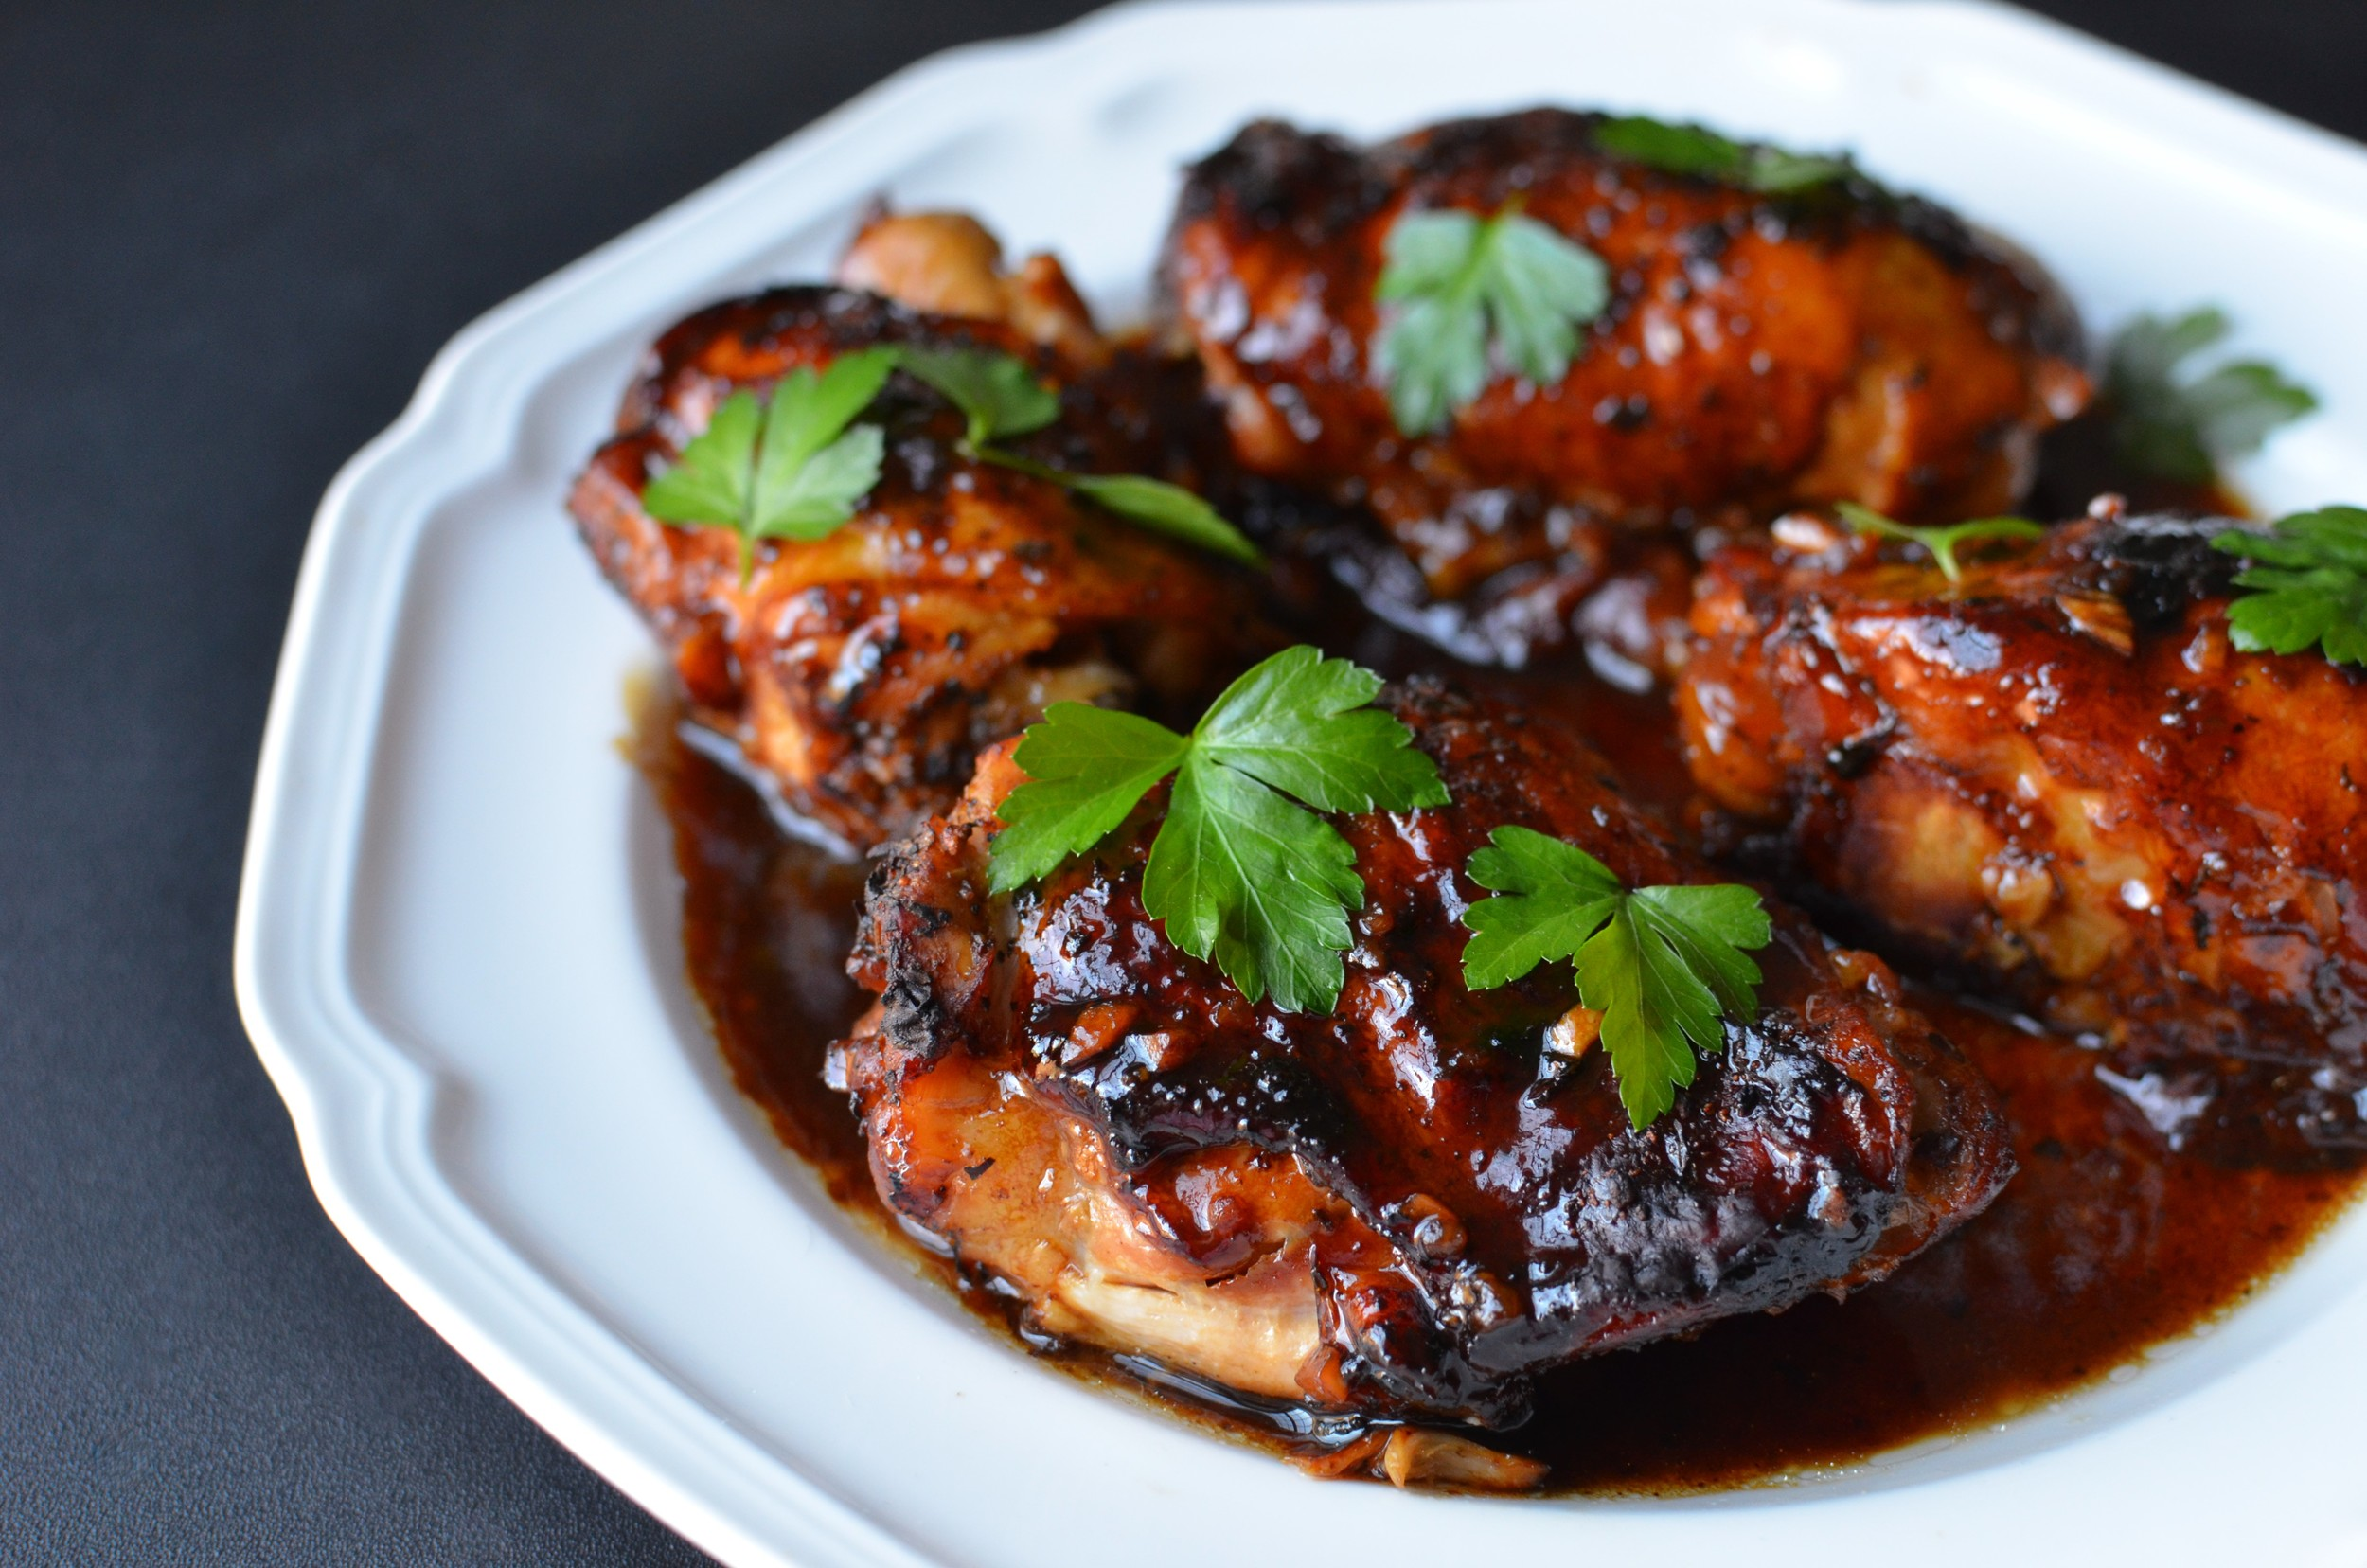 Slow Cooker Balsamic Chicken Thighs - ButterYum. how to cook chicken thighs in the slow cooker or crock pot. what to do with chicken thighs. can I cook chicken thighs in slow cooker? crock pot recipe for chicken thighs.